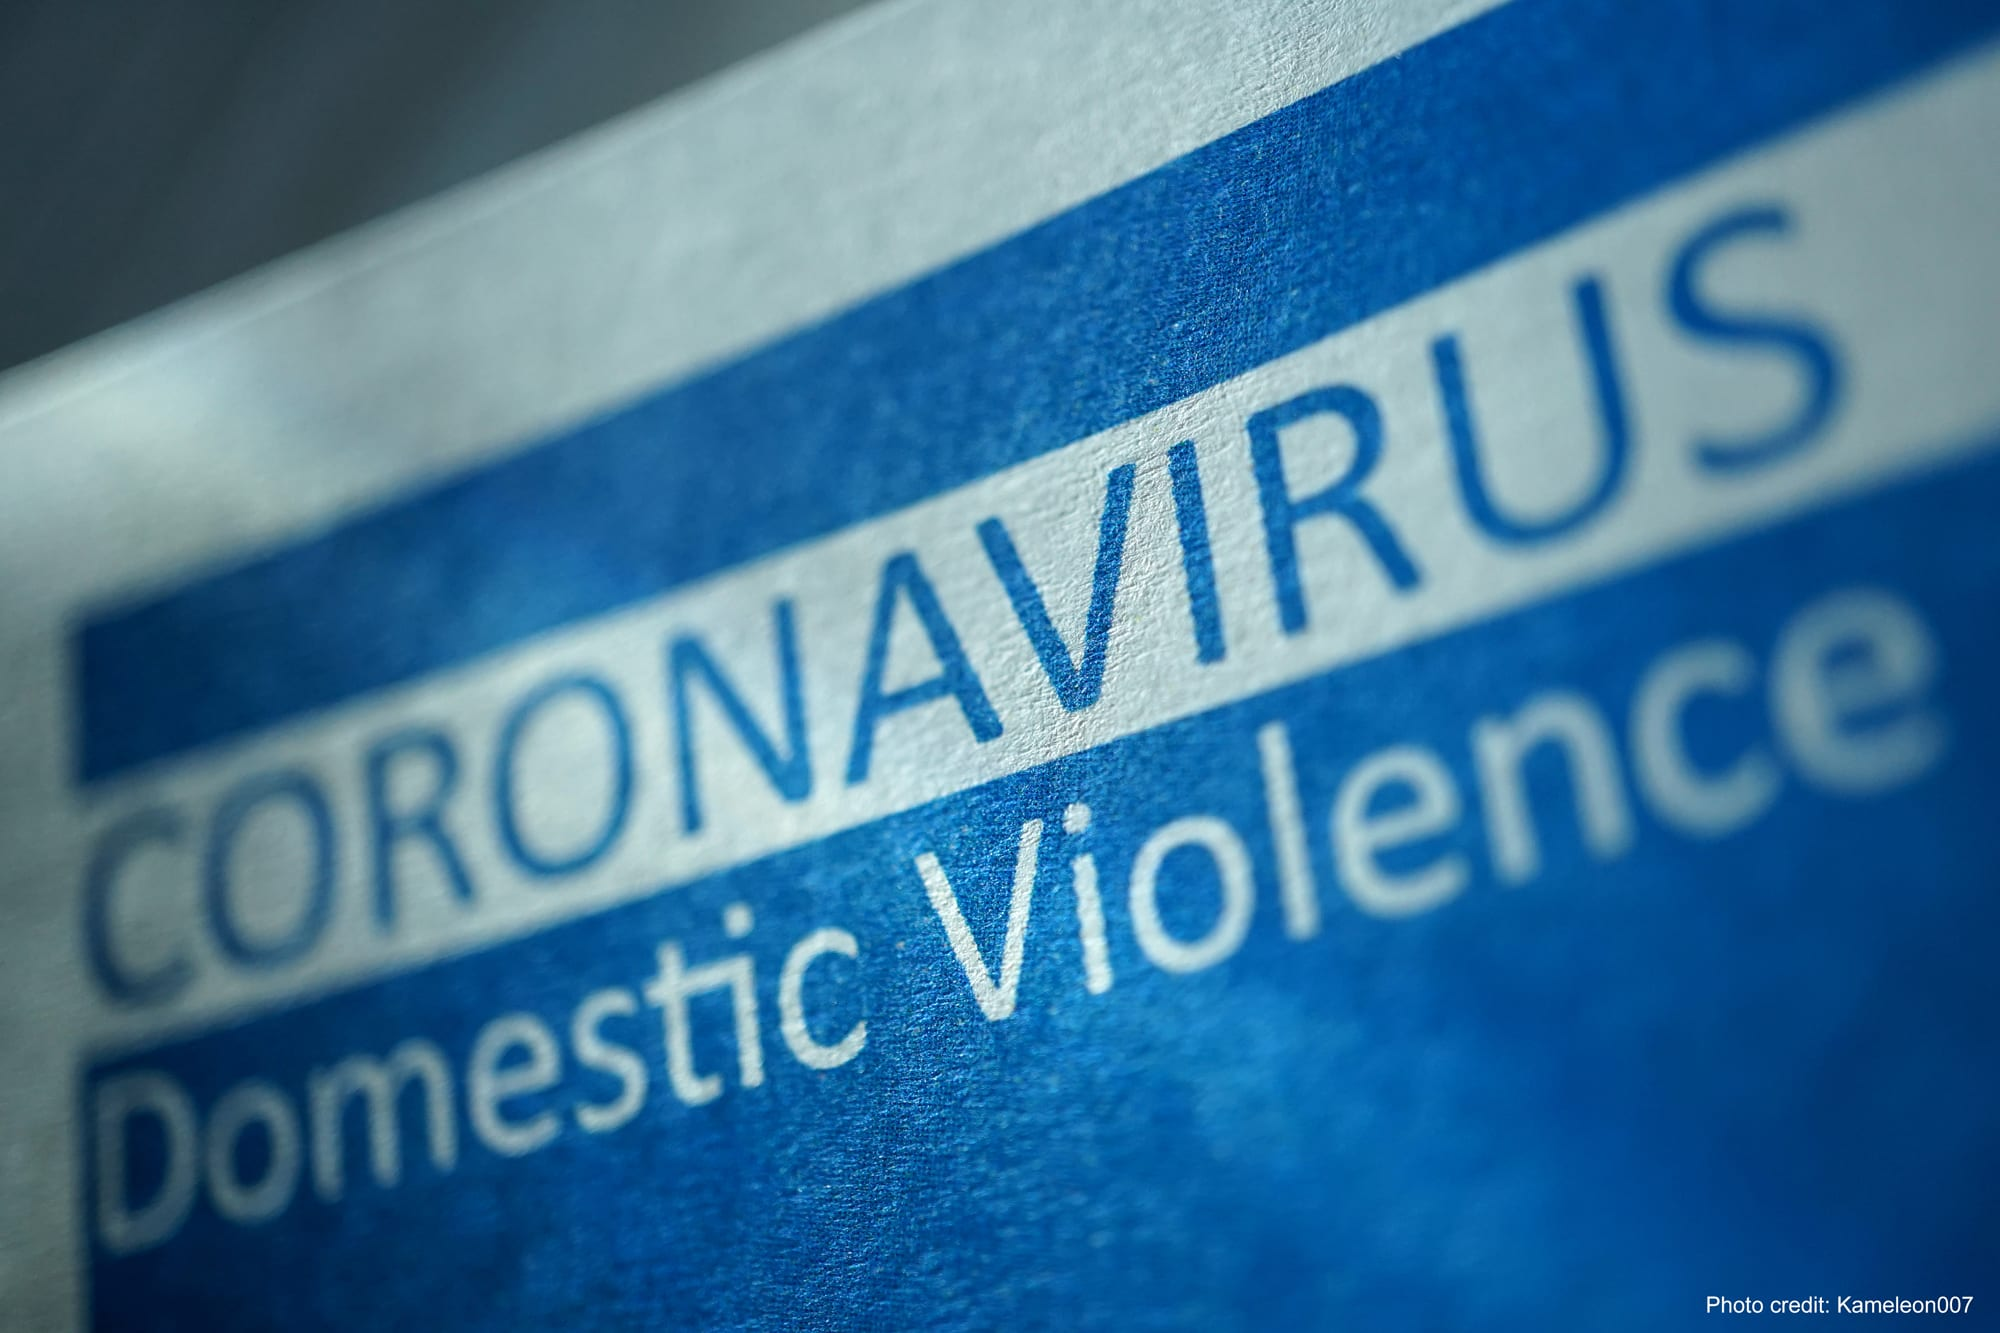 Coronavirus Domestic Violence | Photo credit: Kameleon007